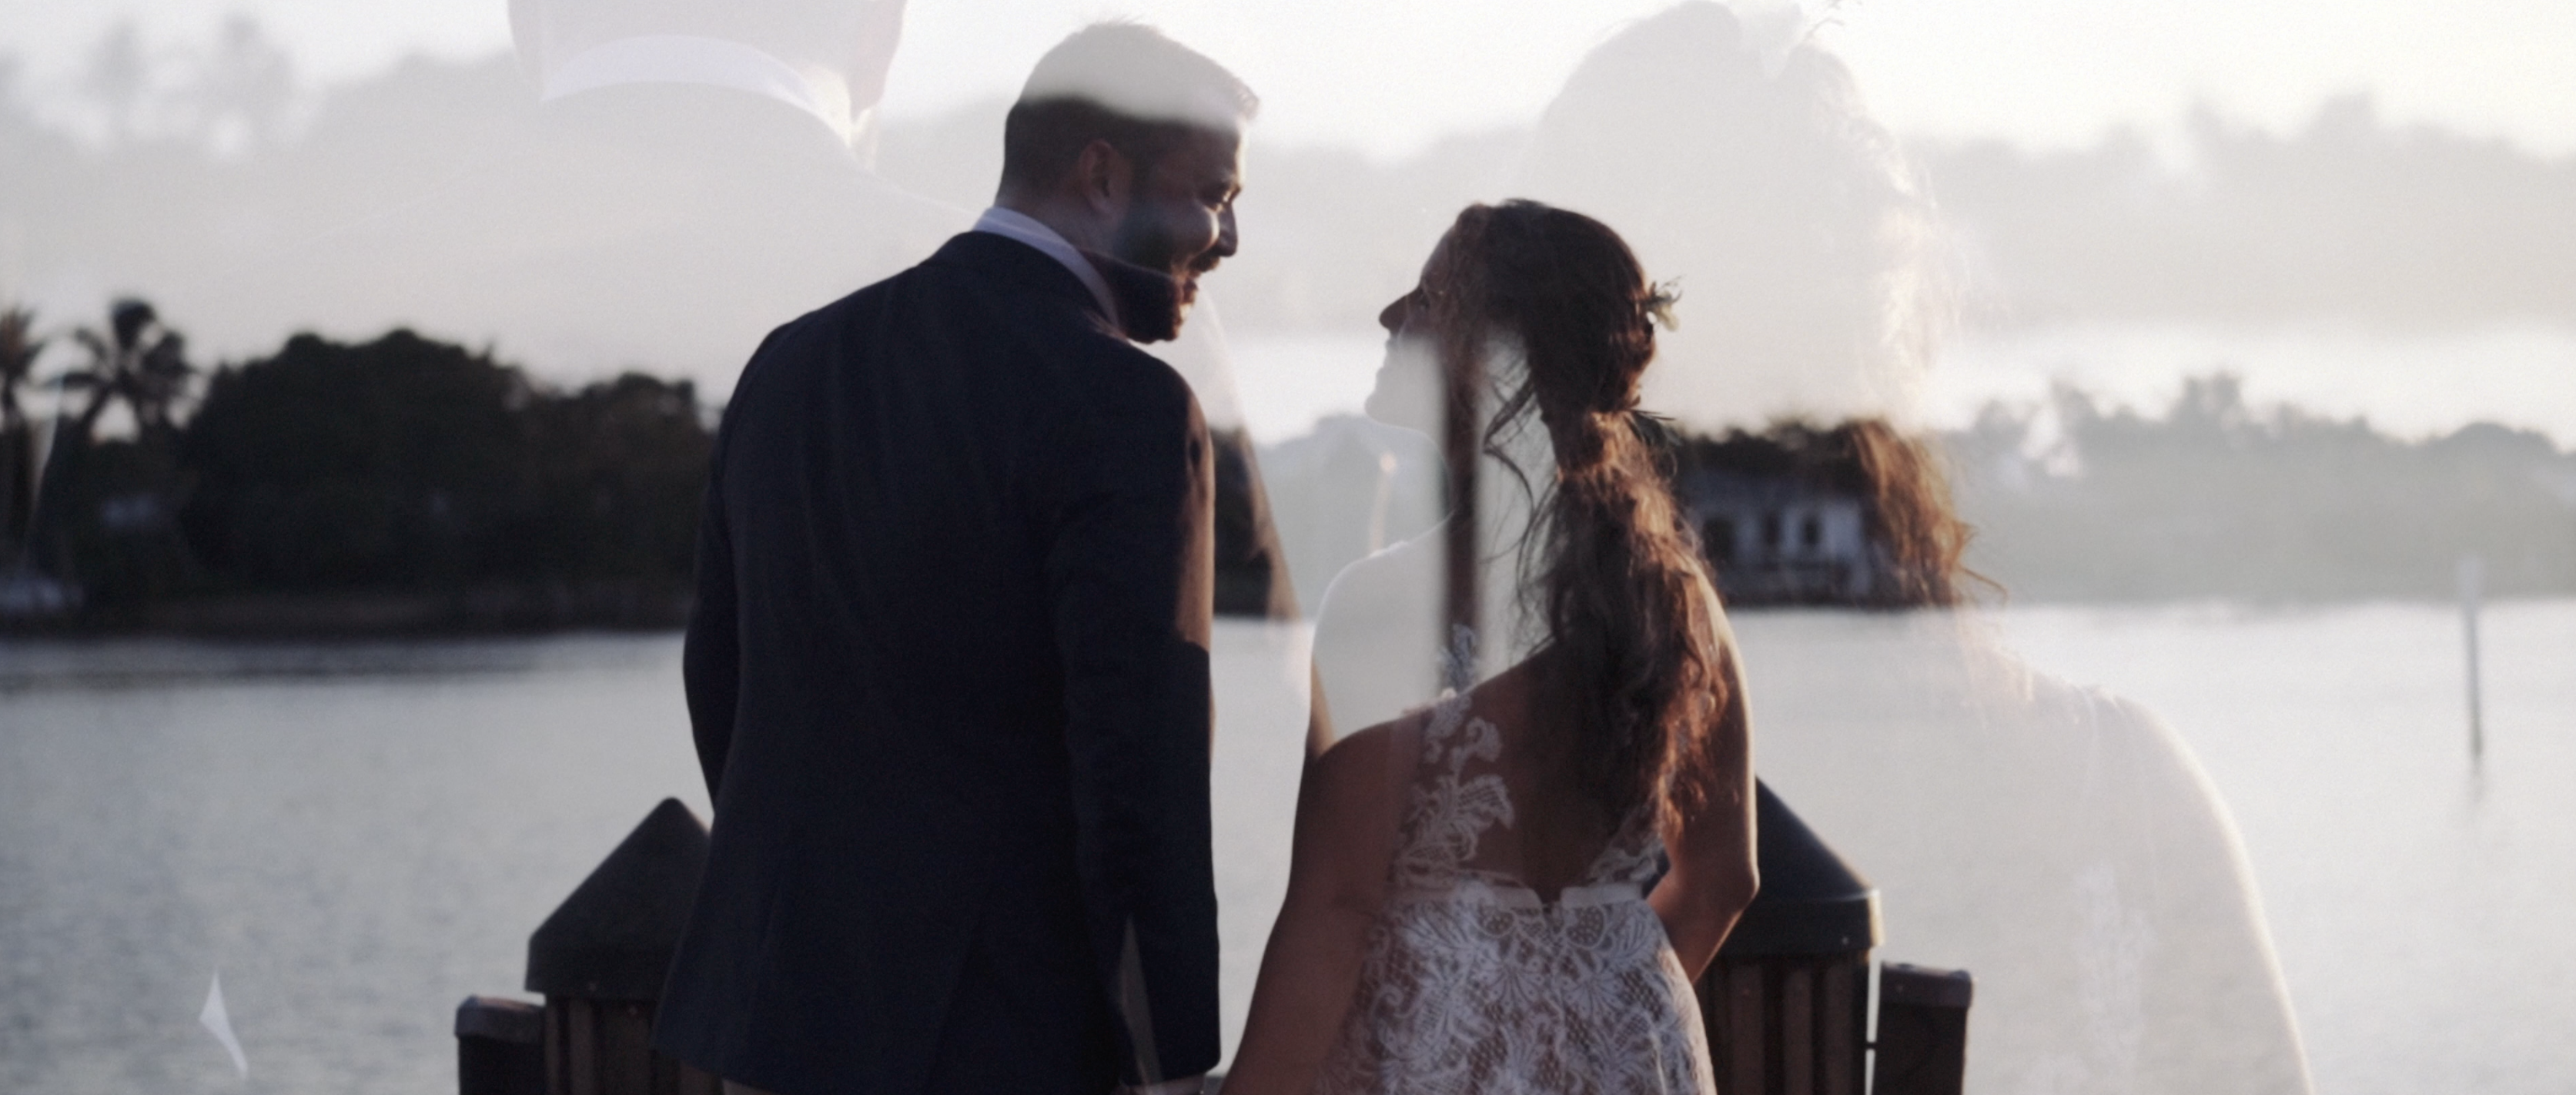 intimate-emotional-quail-valley-wedding-video-film